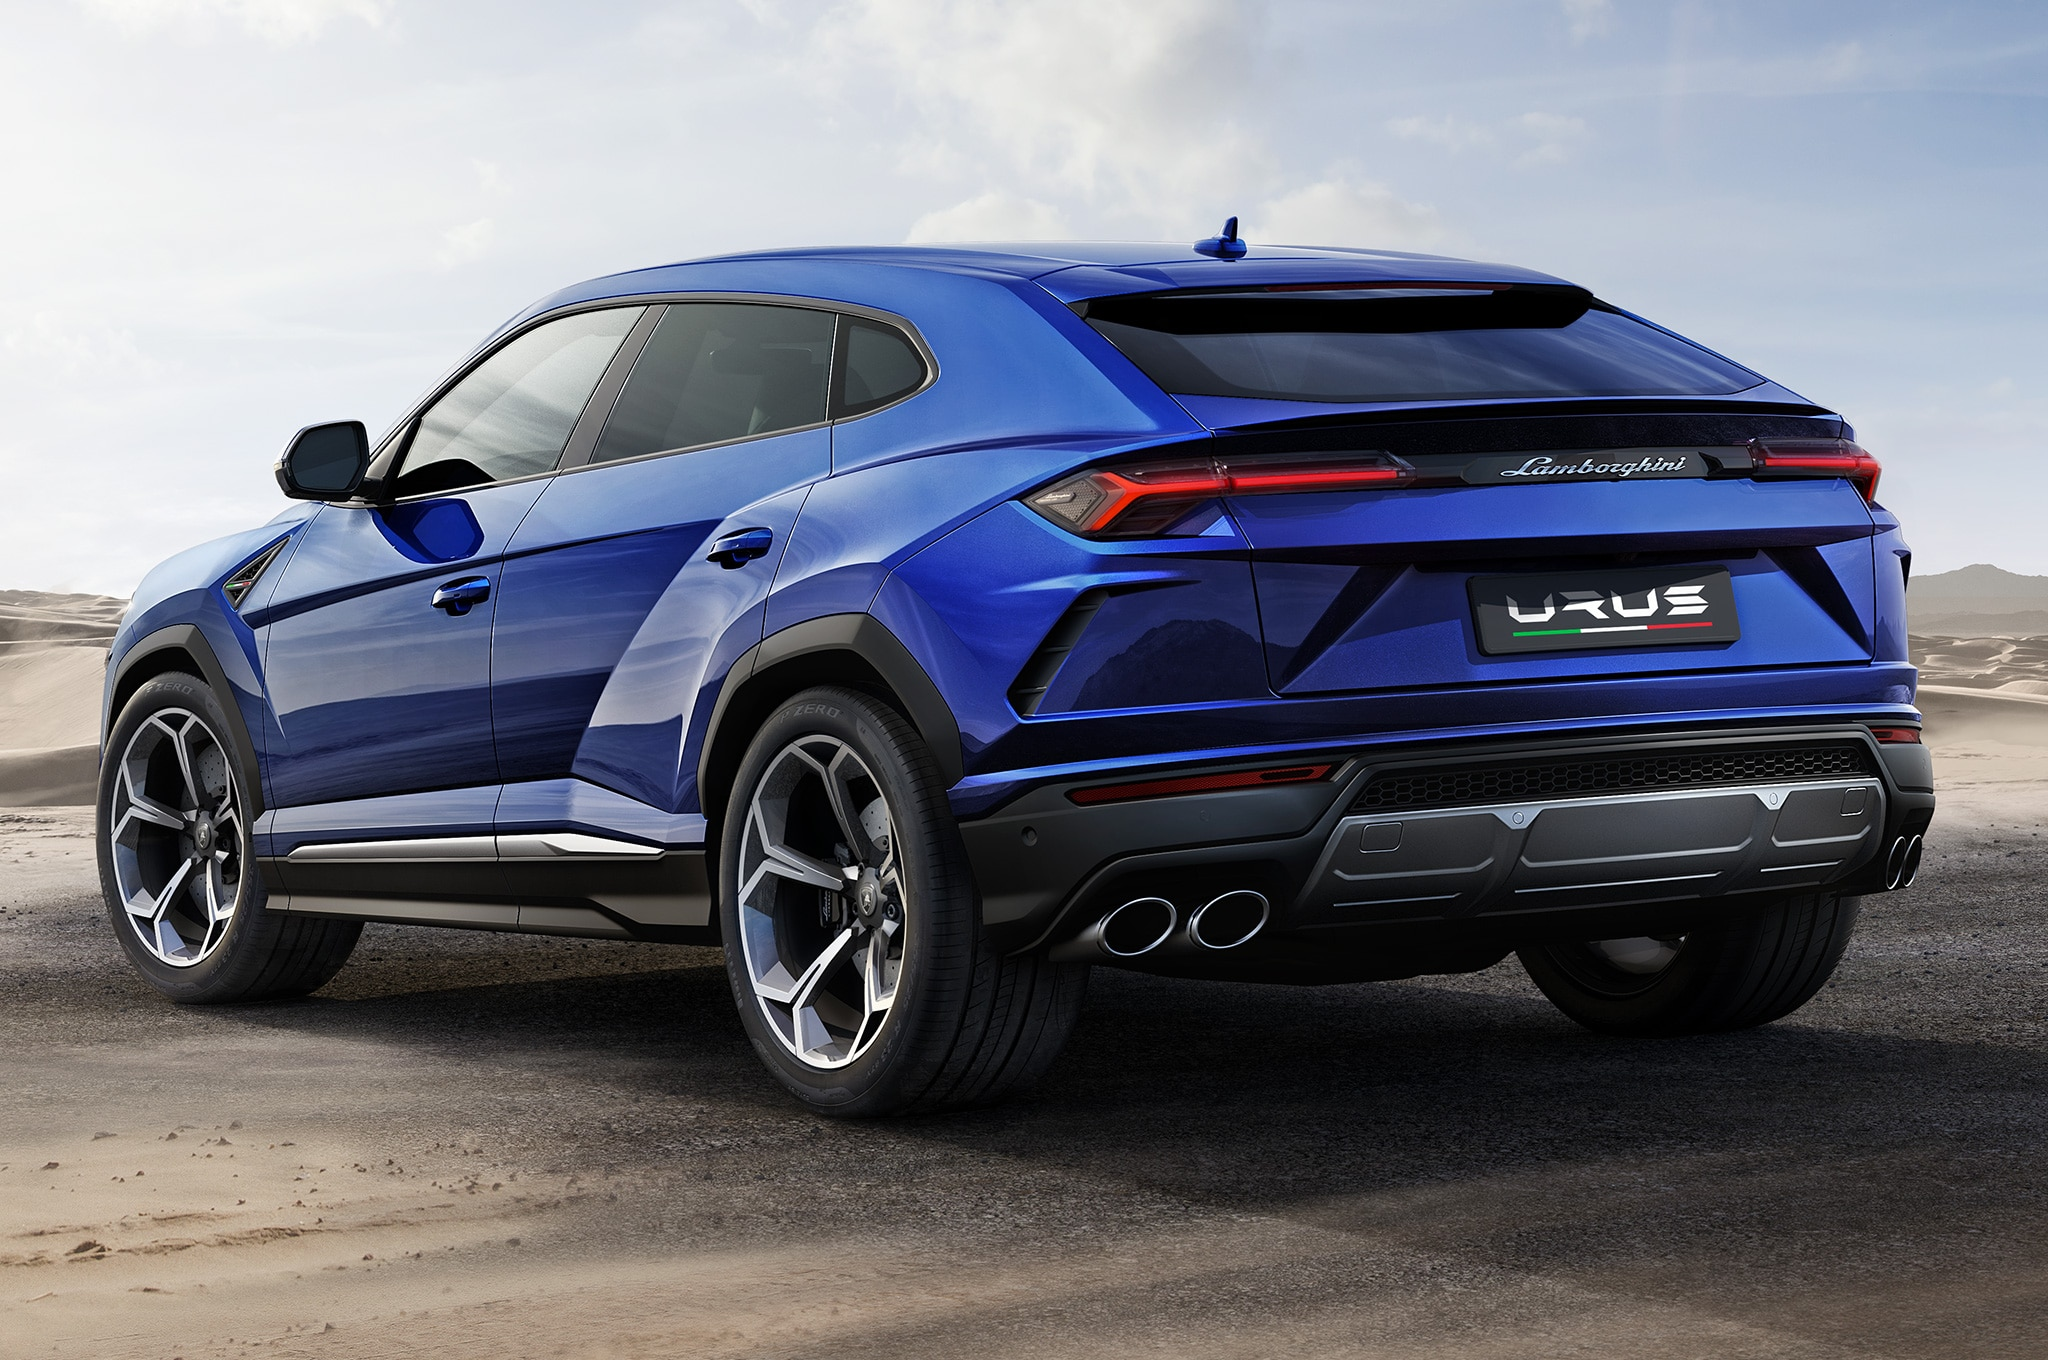 2019 Lamborghini Urus Rear Side View Parked